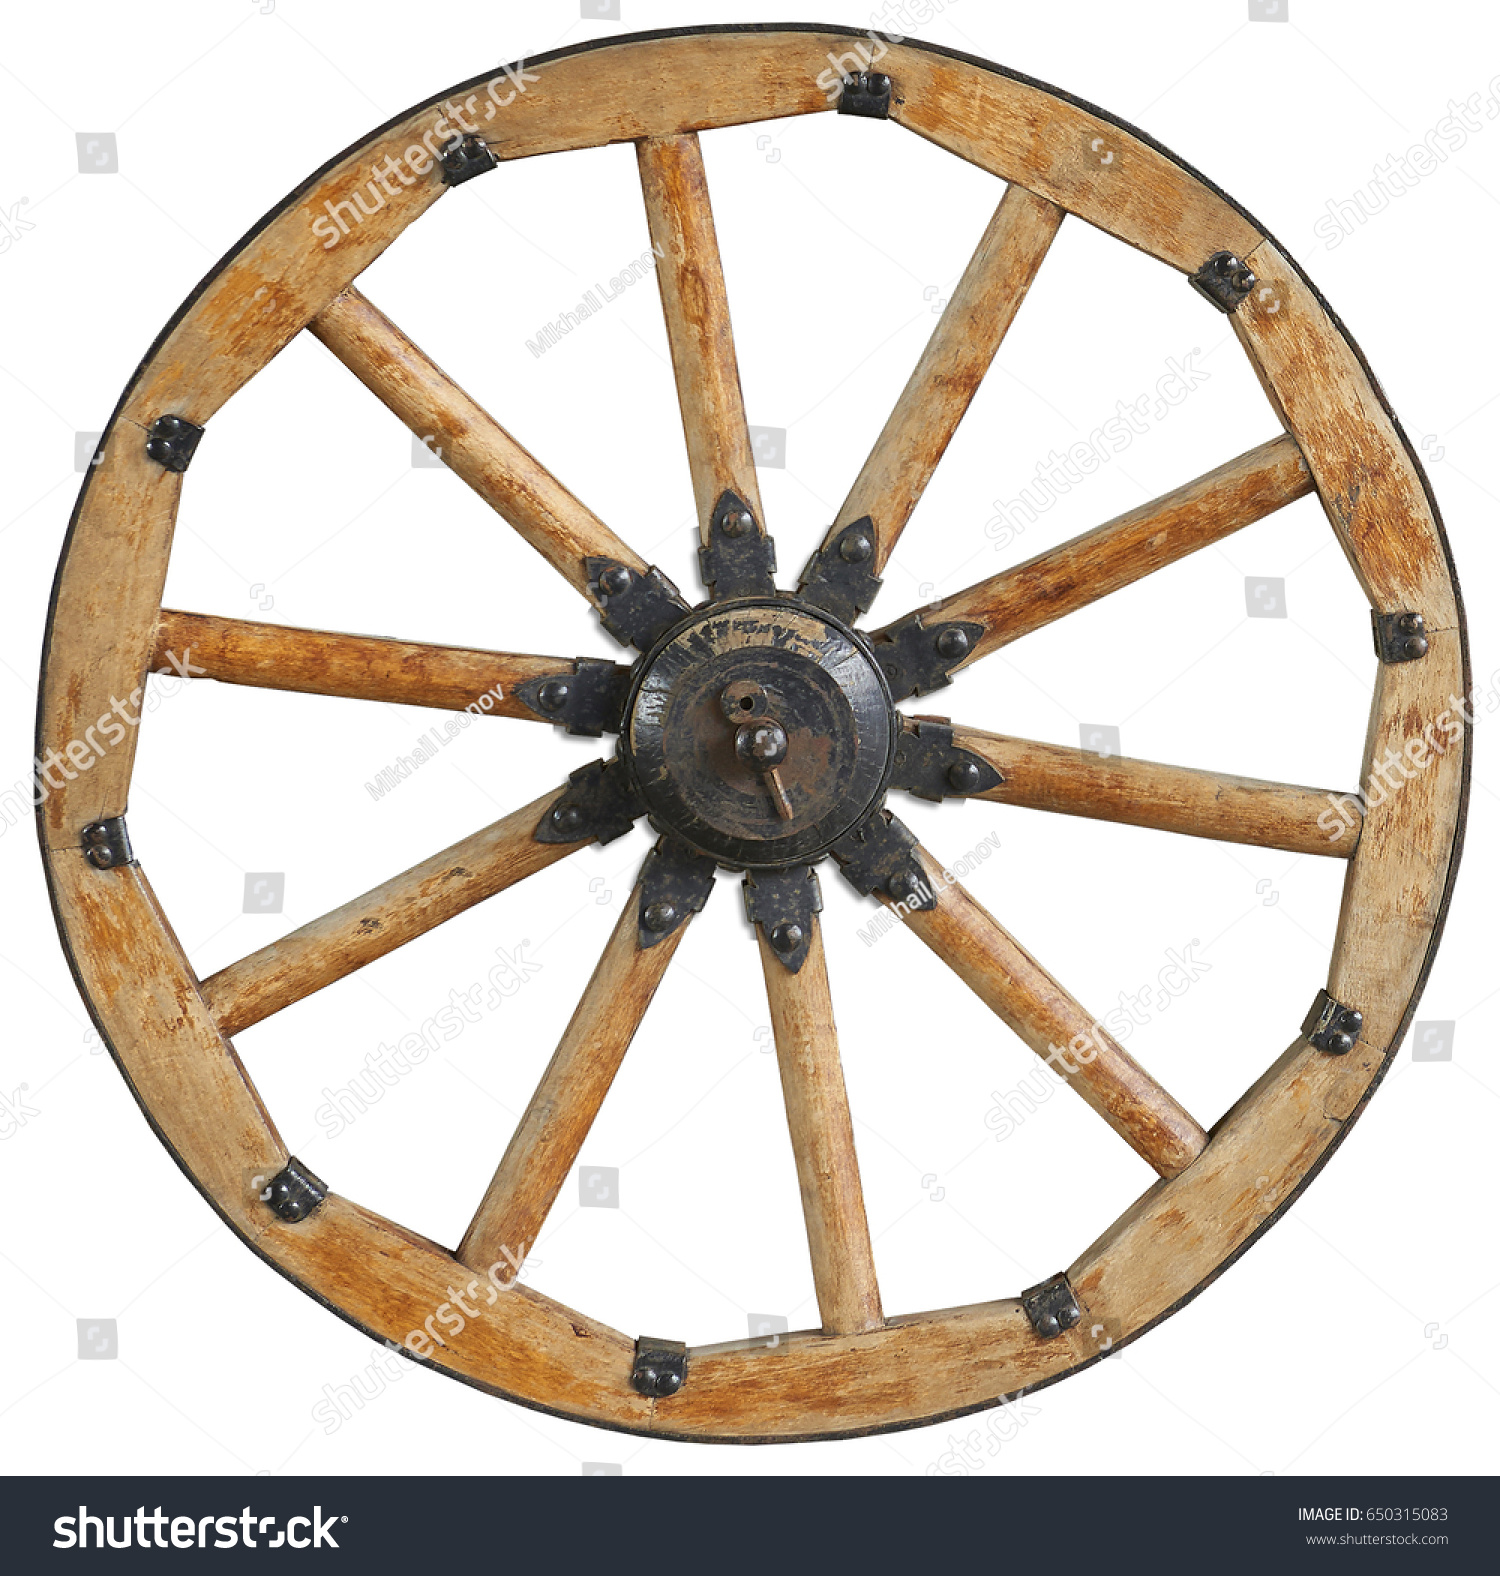 Antique Steel Spoke Wheels : Classic old antique wooden wagon wheel stock photo